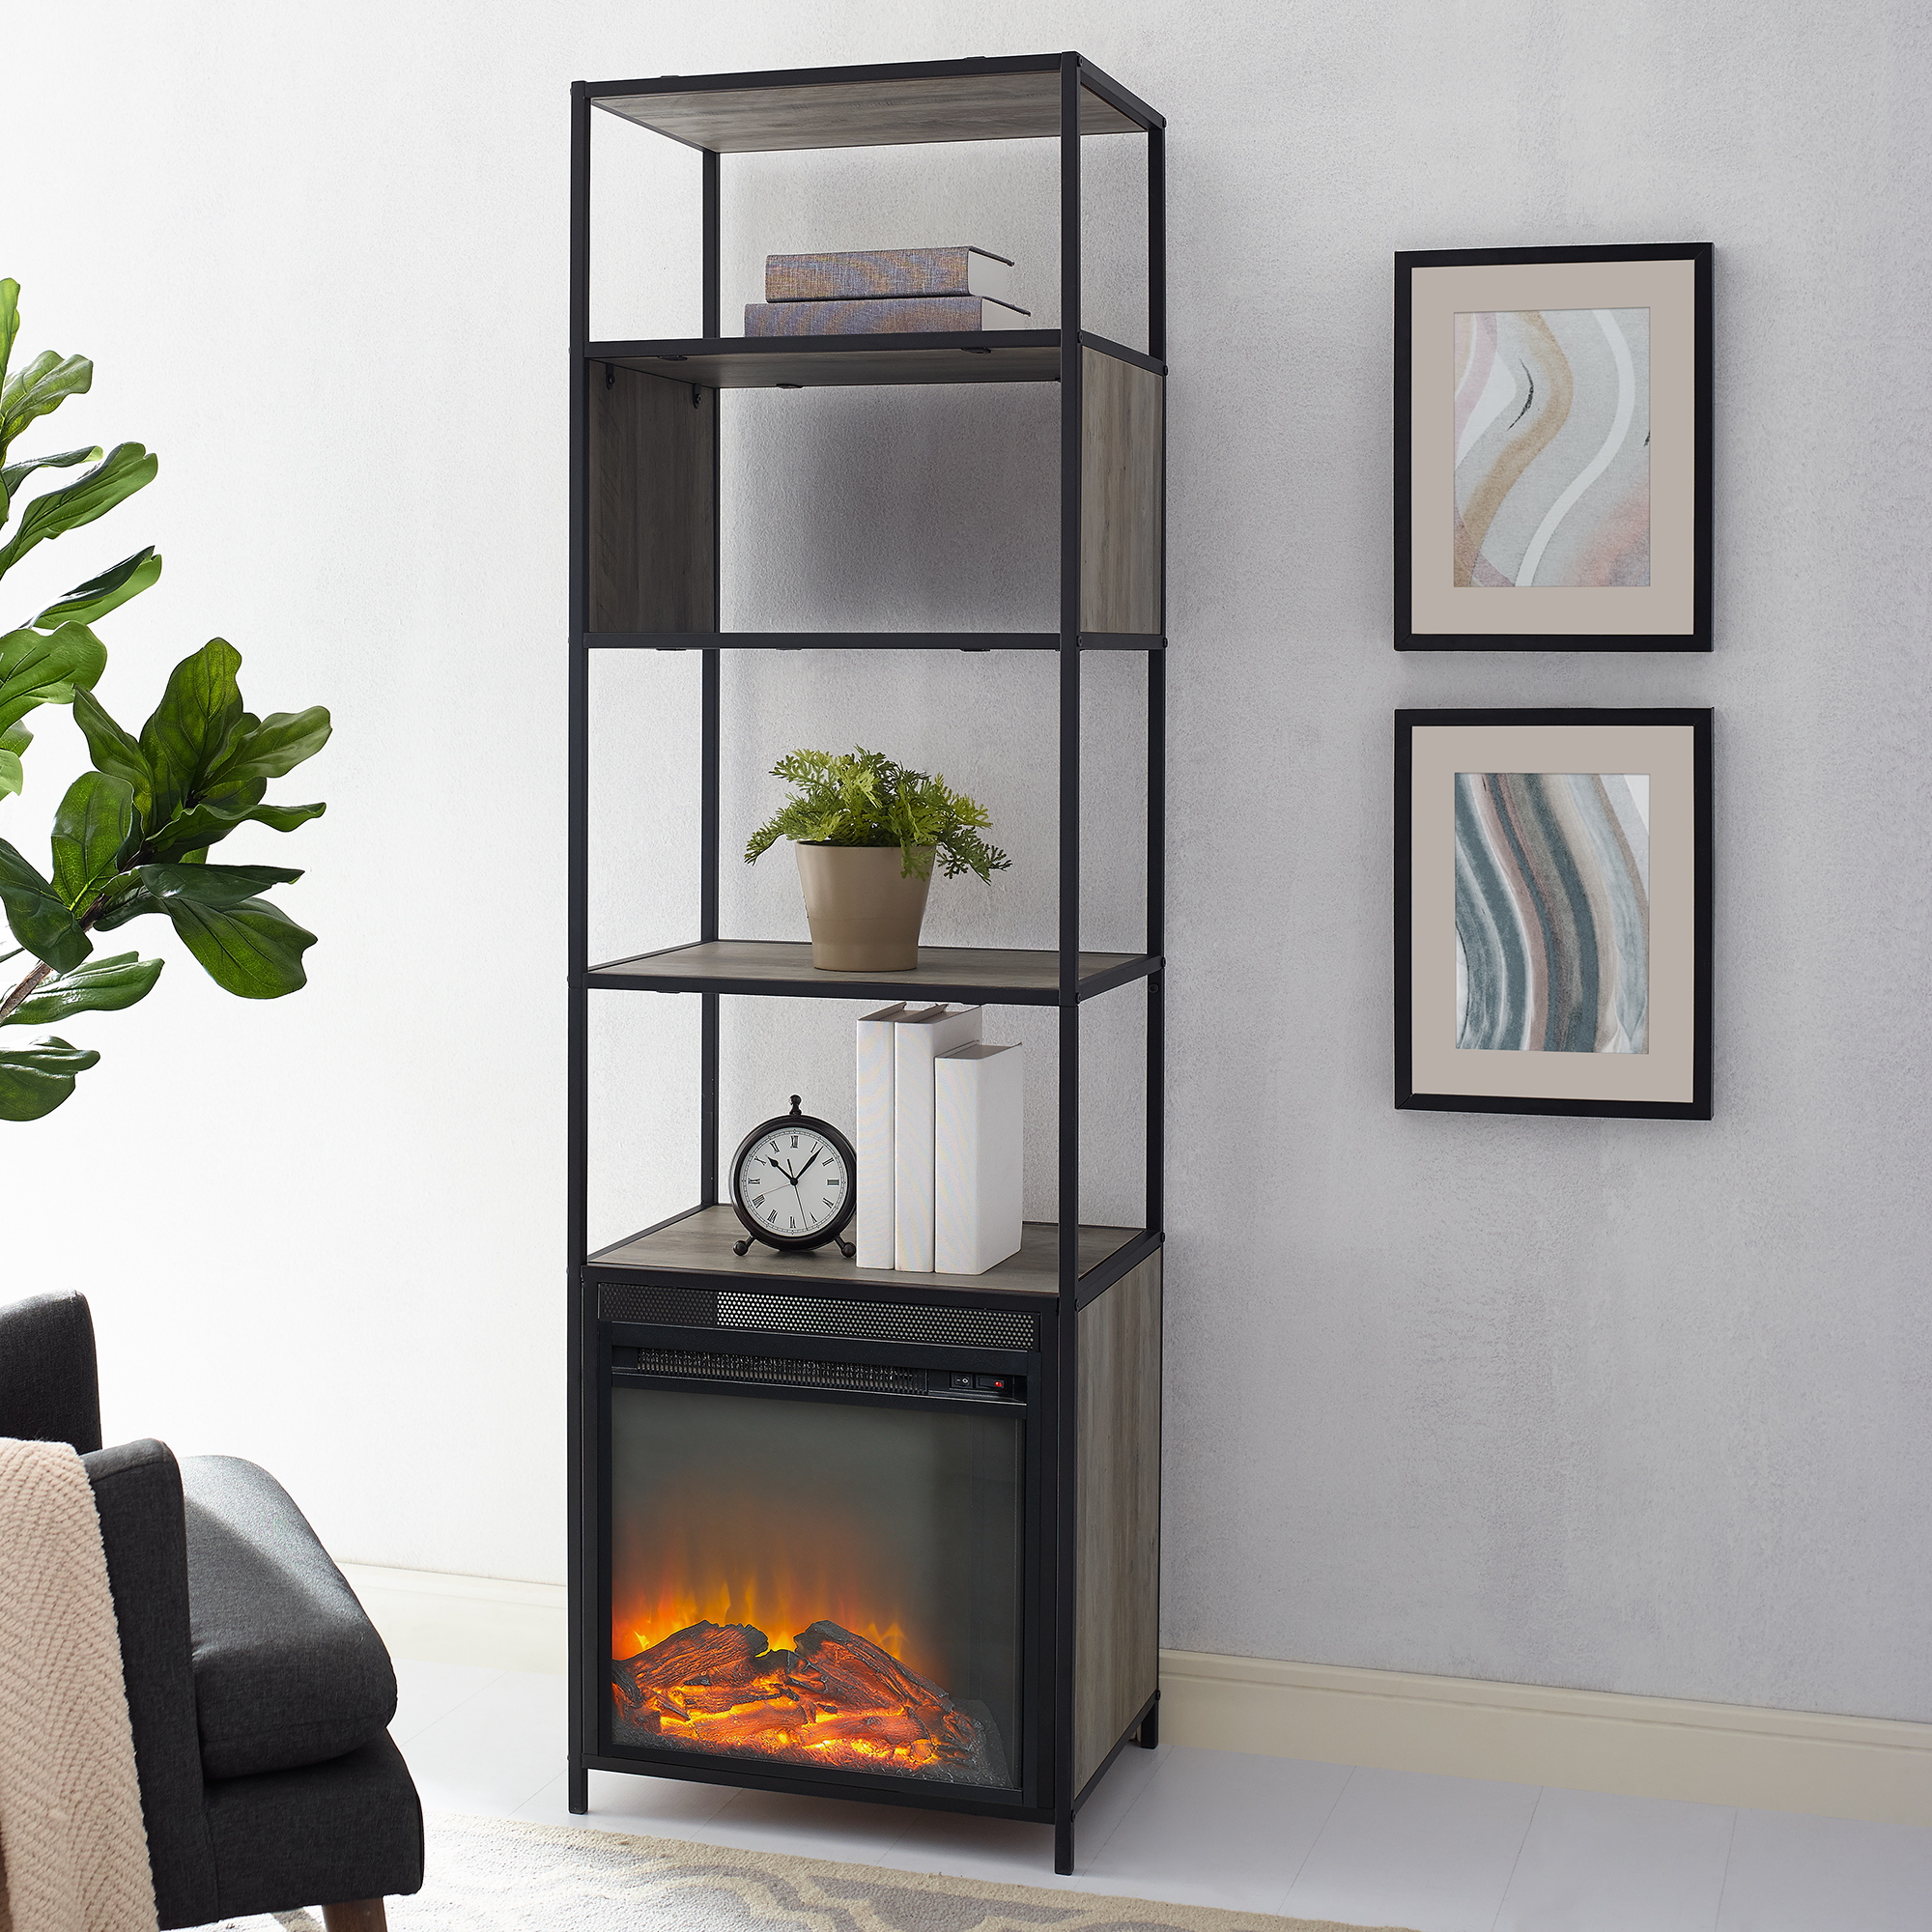 "Manor Park 70"" Urban Industrial Metal and Wood Tower Fireplace - Dark Walnut"